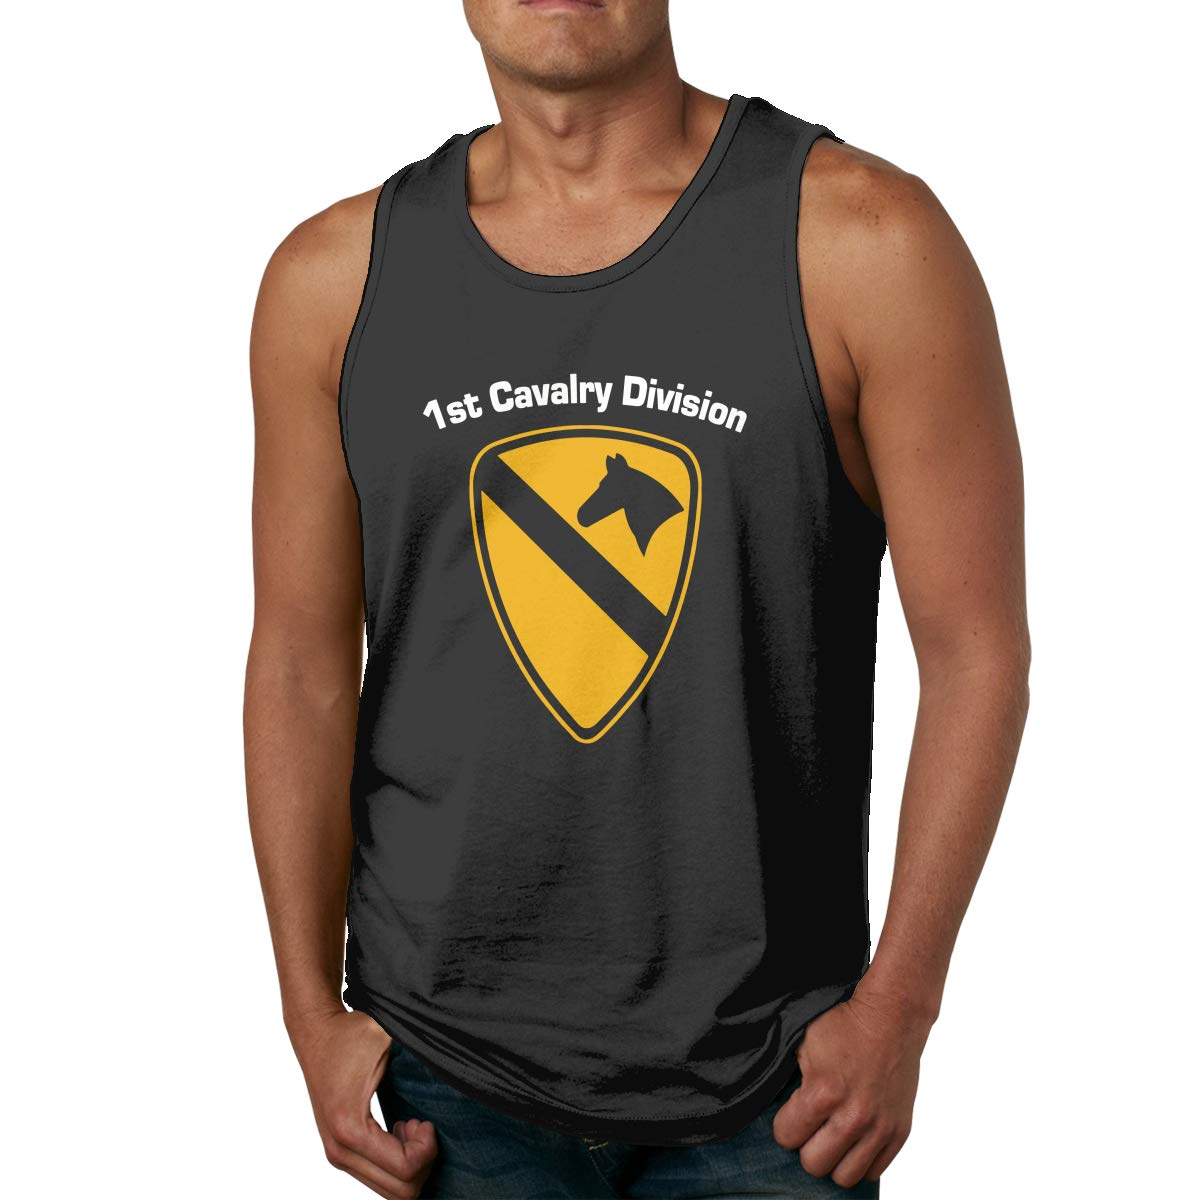 Army 1st Cavalry Men Printed Vest Sports Tank-Top T-Shirt Leisure Sleeveless Tees FKAHQ U.S